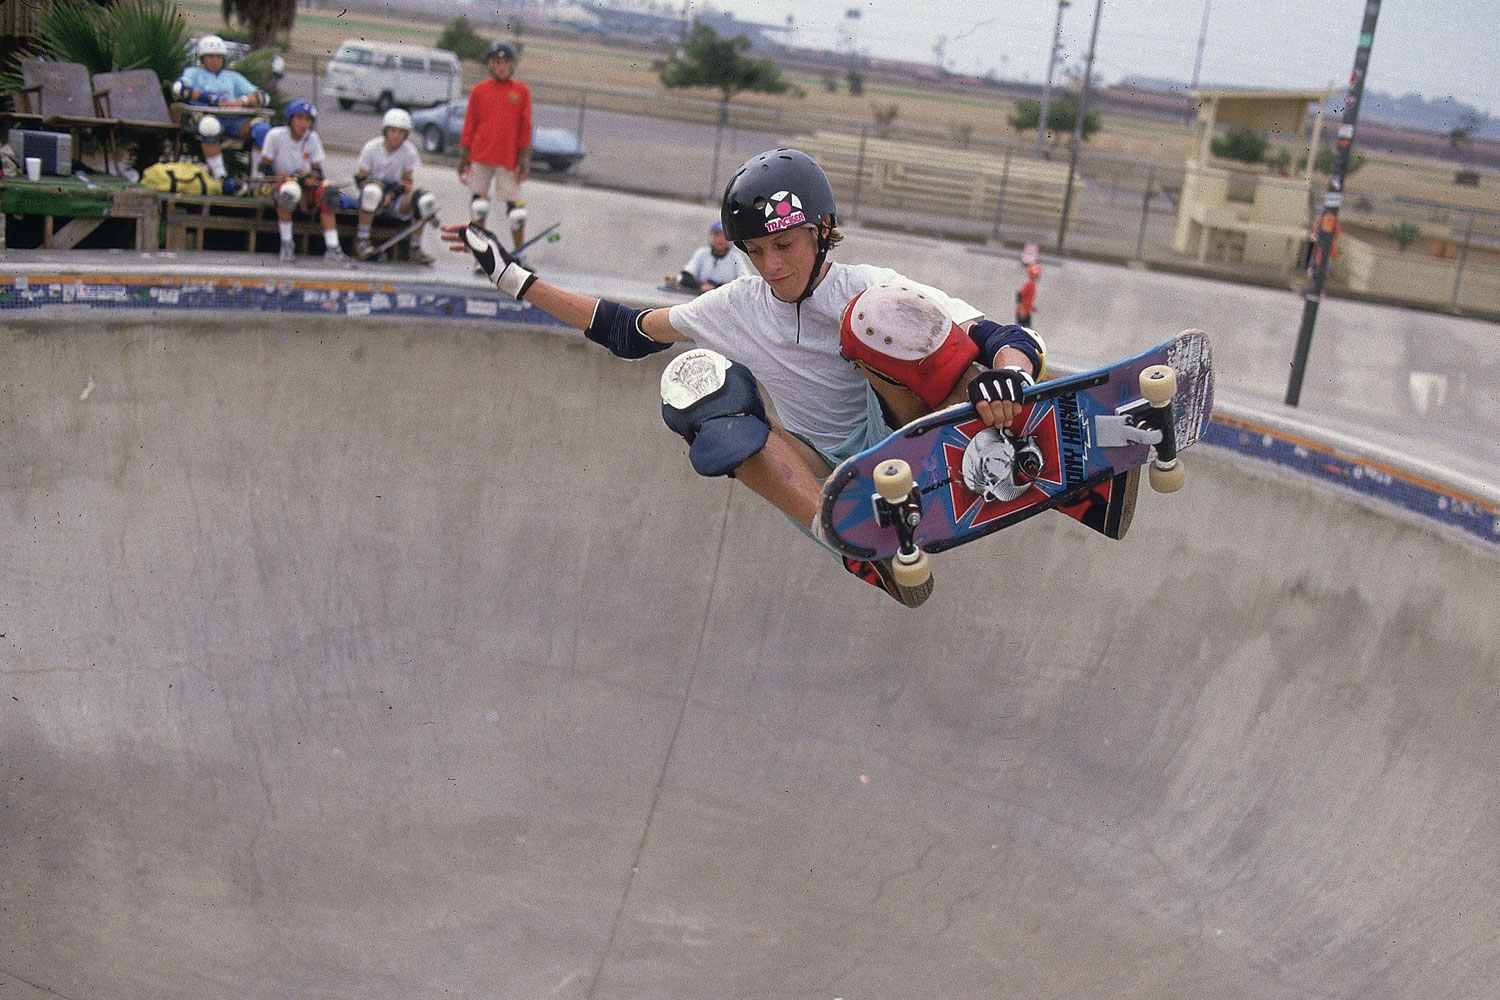 Tony Hawk flying in and out of the bowl at a skateboarding competition back in 1986.